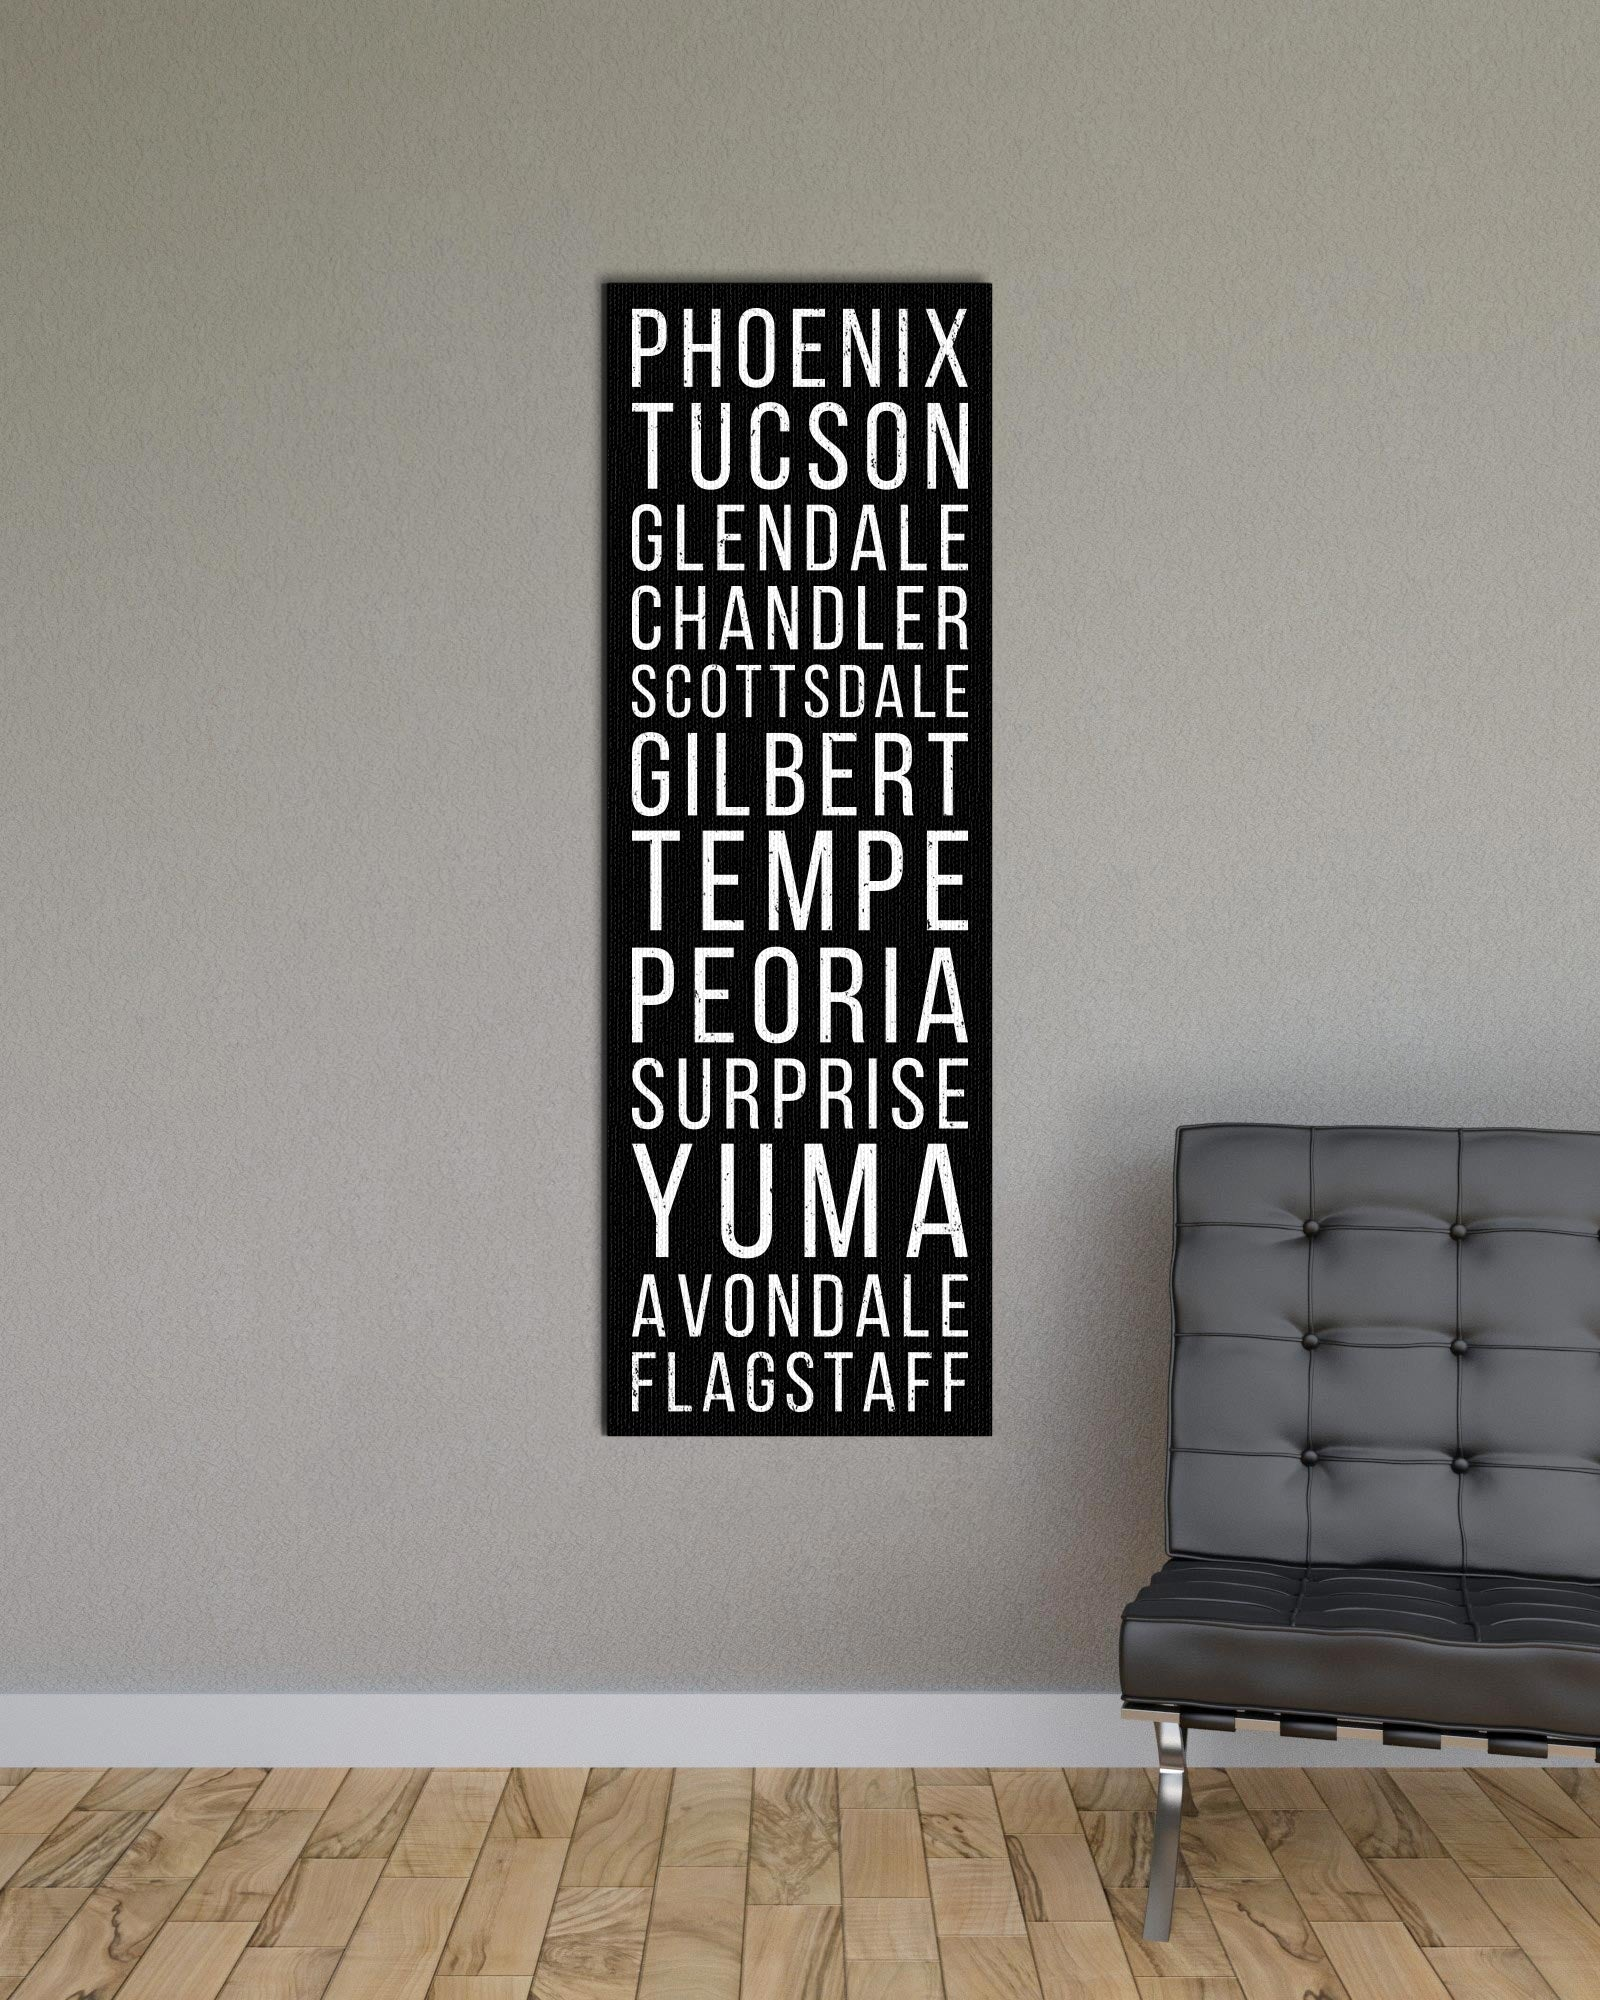 Arizona Phoenix Tucson Glendale Bus Scroll Subway Print